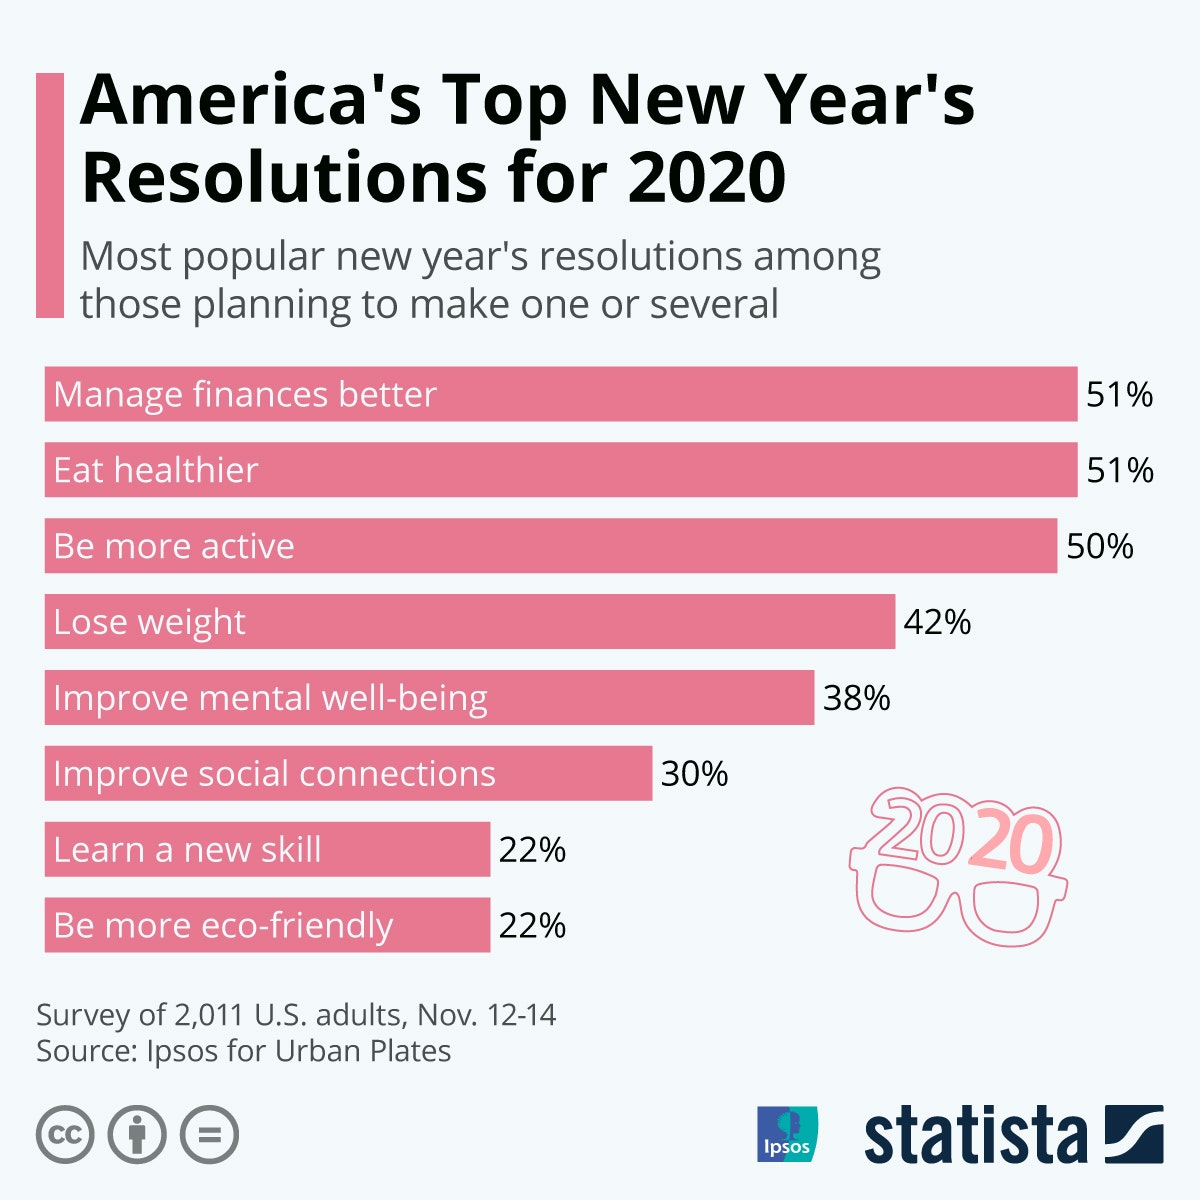 Top New Year's Resolutions for 2020